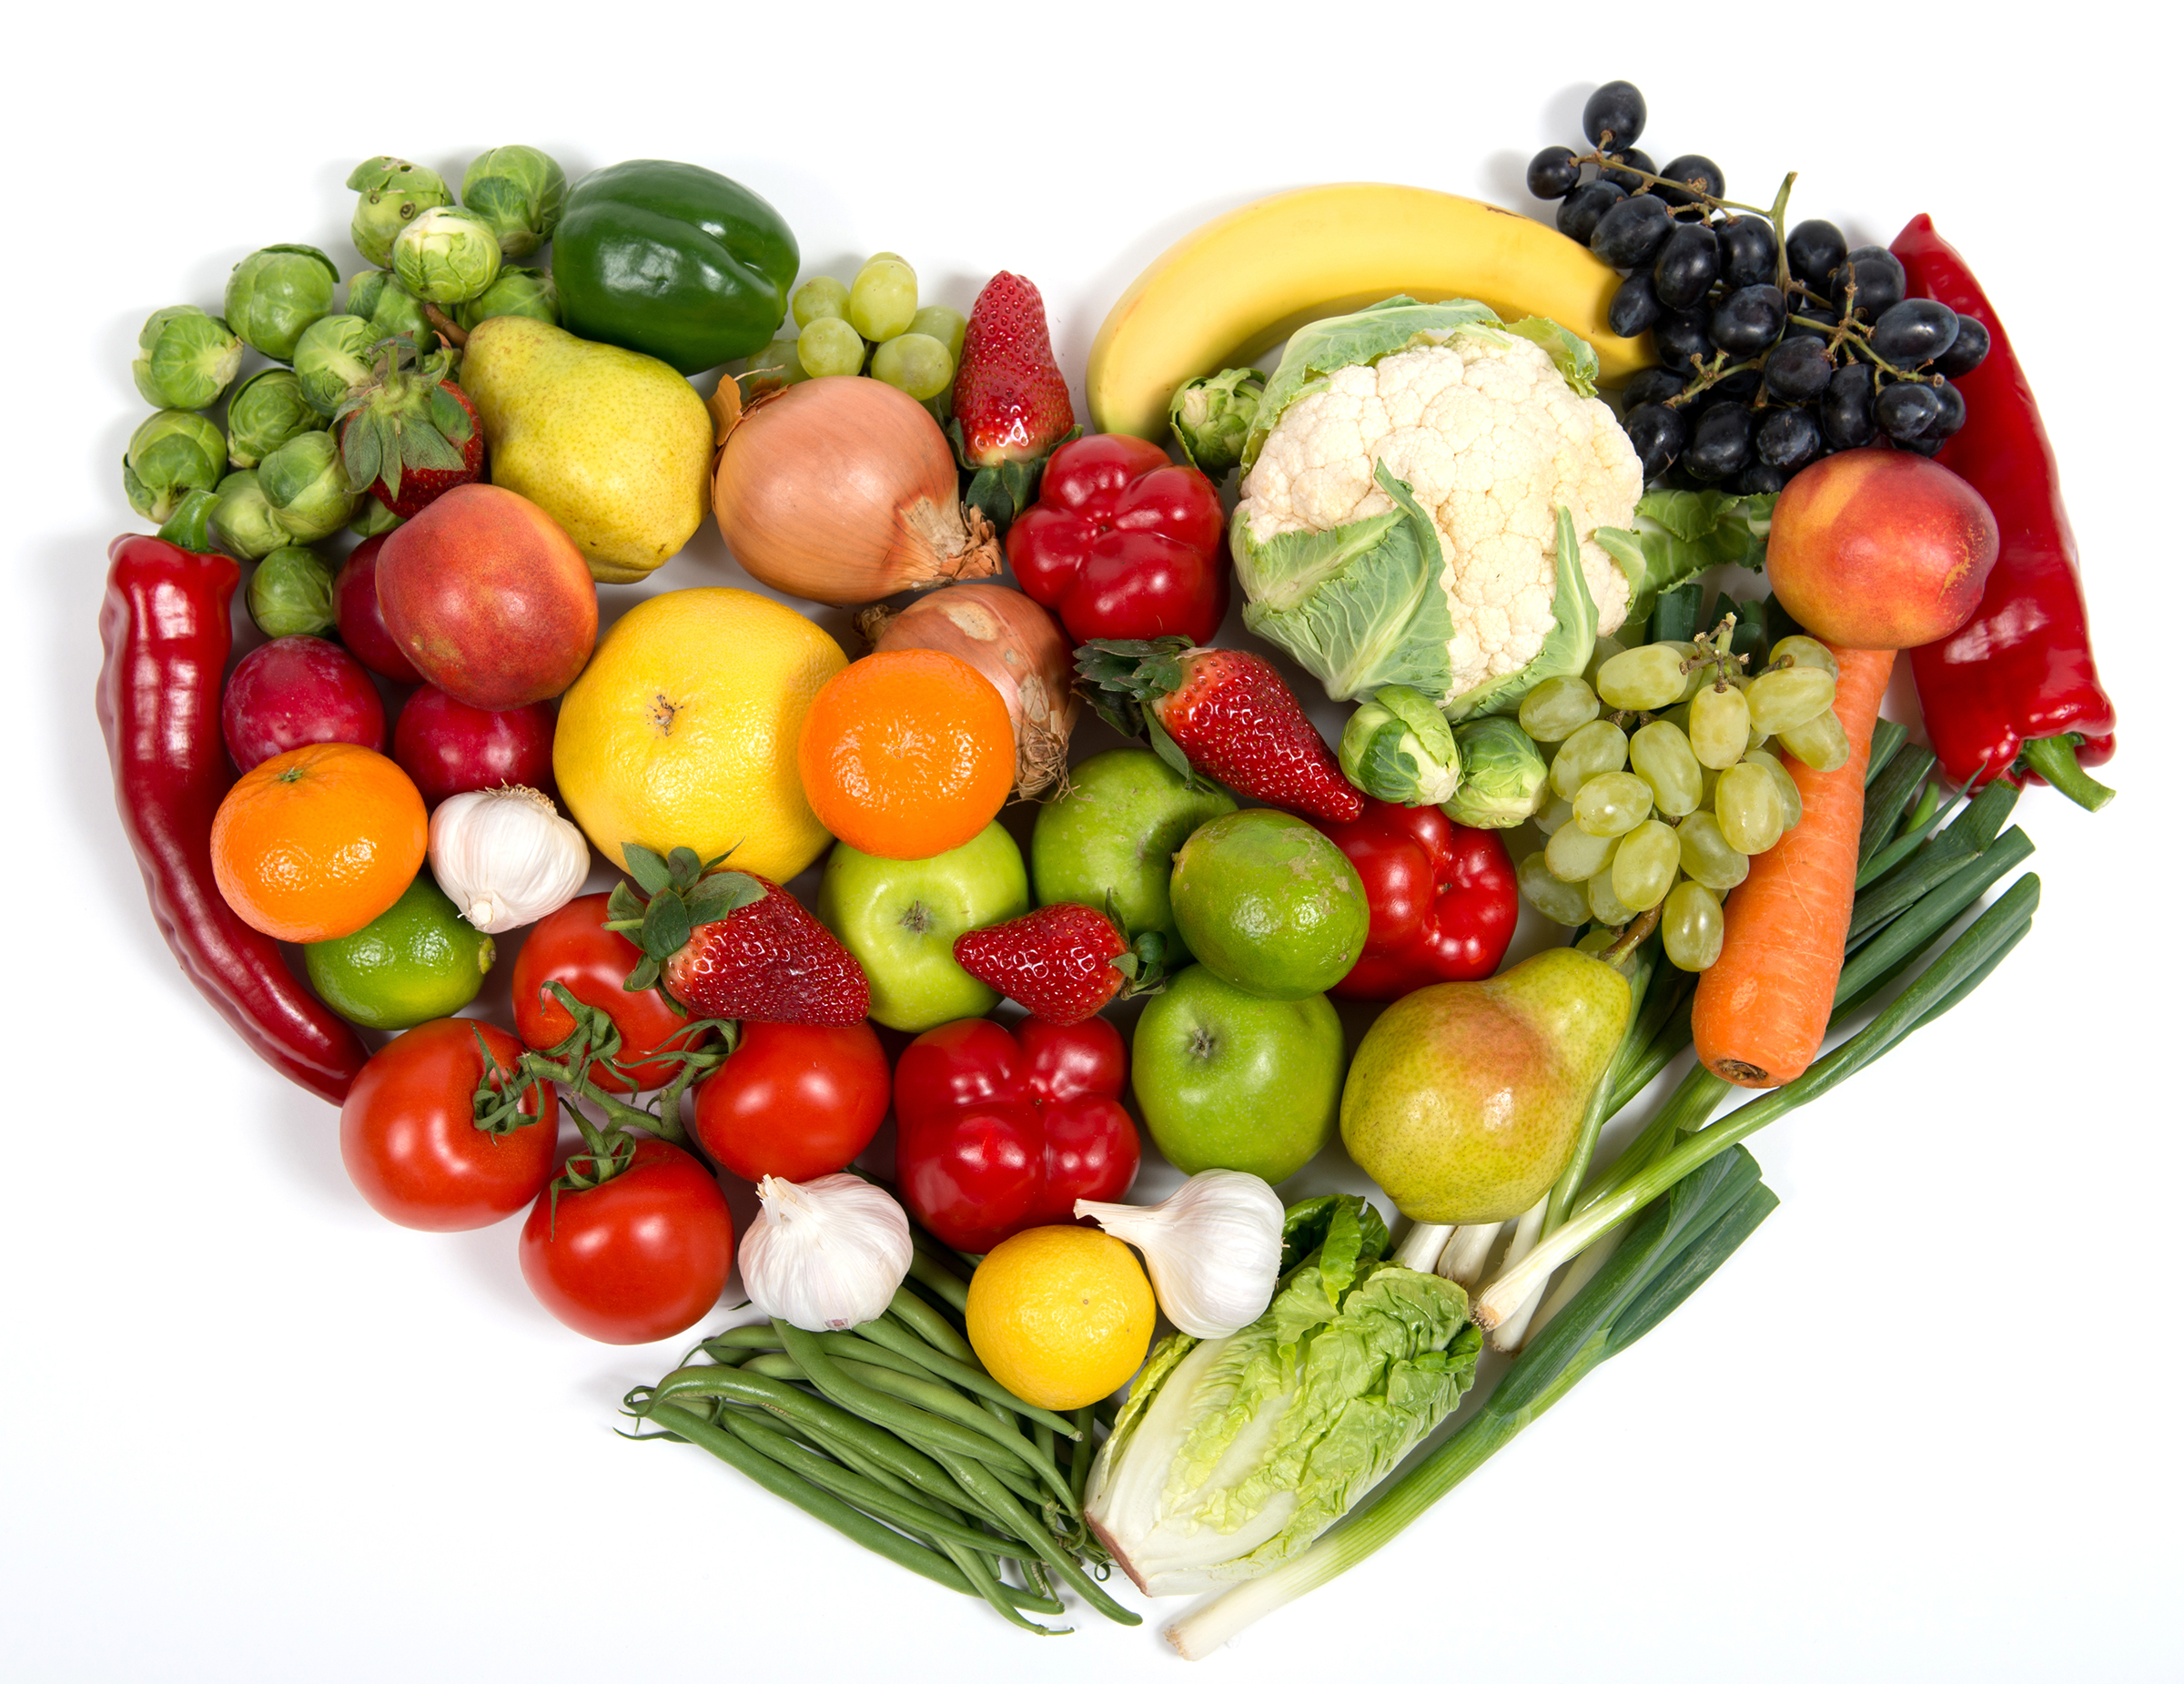 Image result for vegetables and fruit image